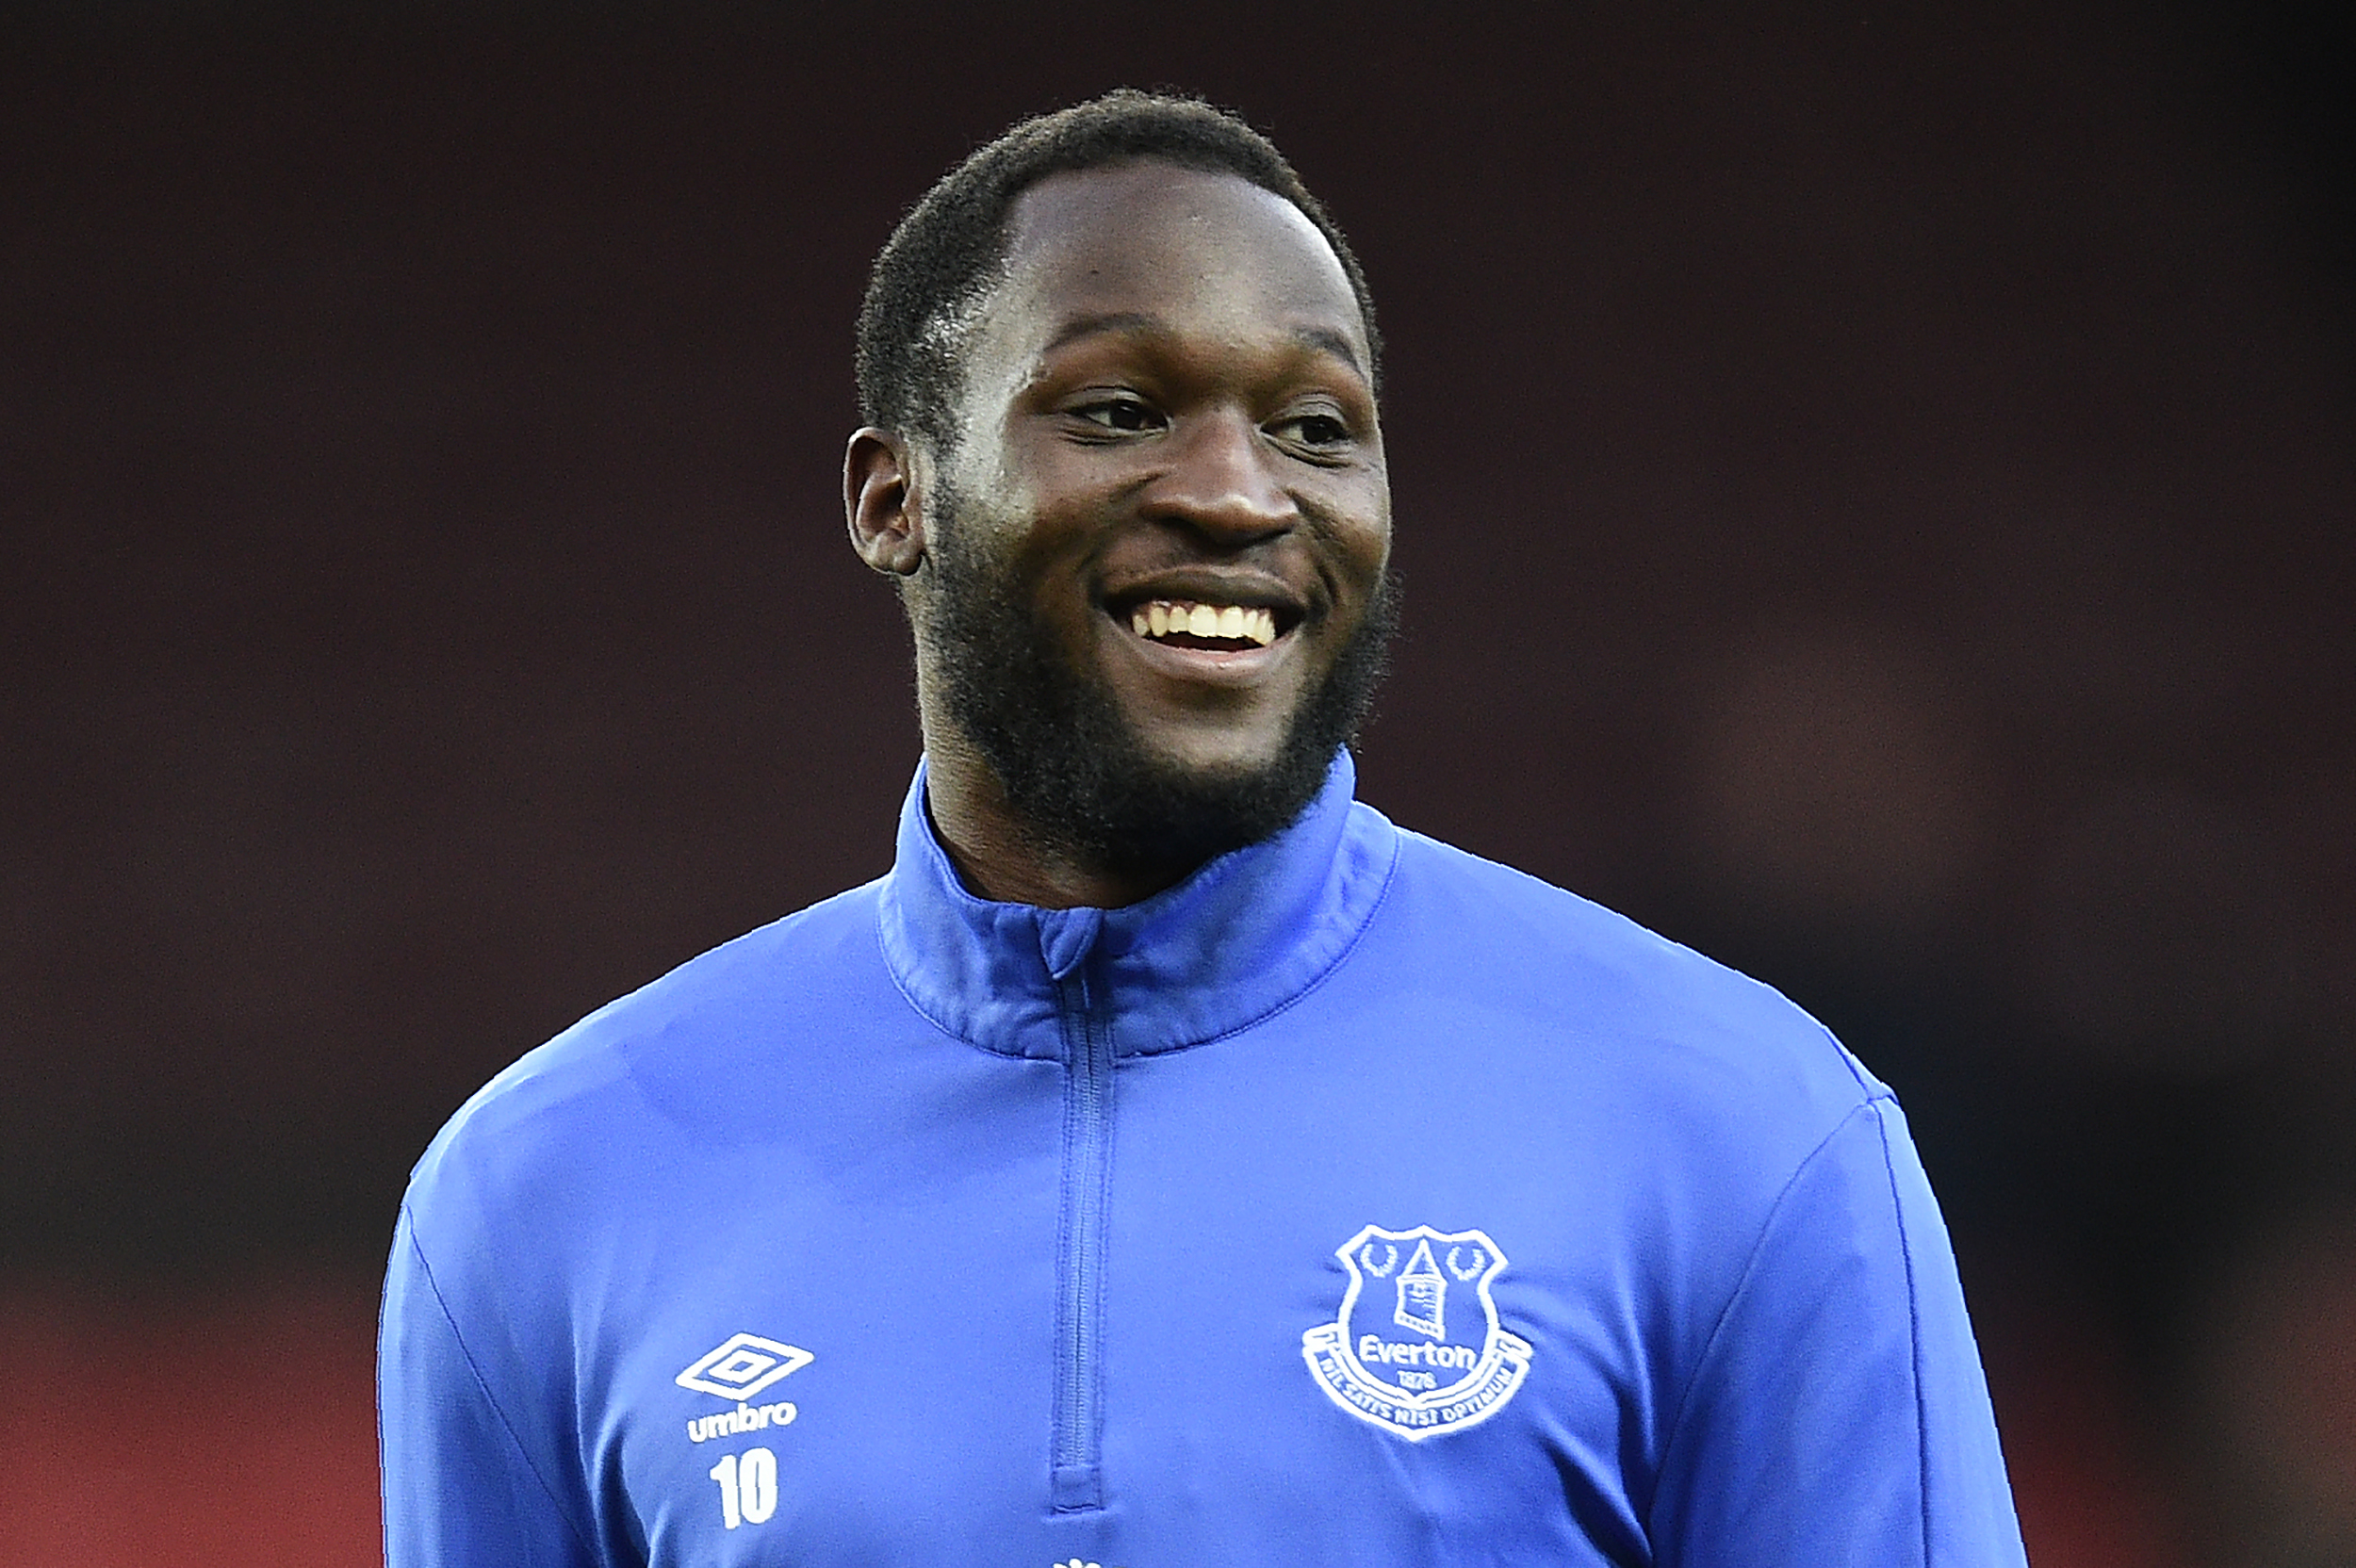 Romelu Lukaku agrees £200k contract with Manchester United, transfer fee still being negotiated